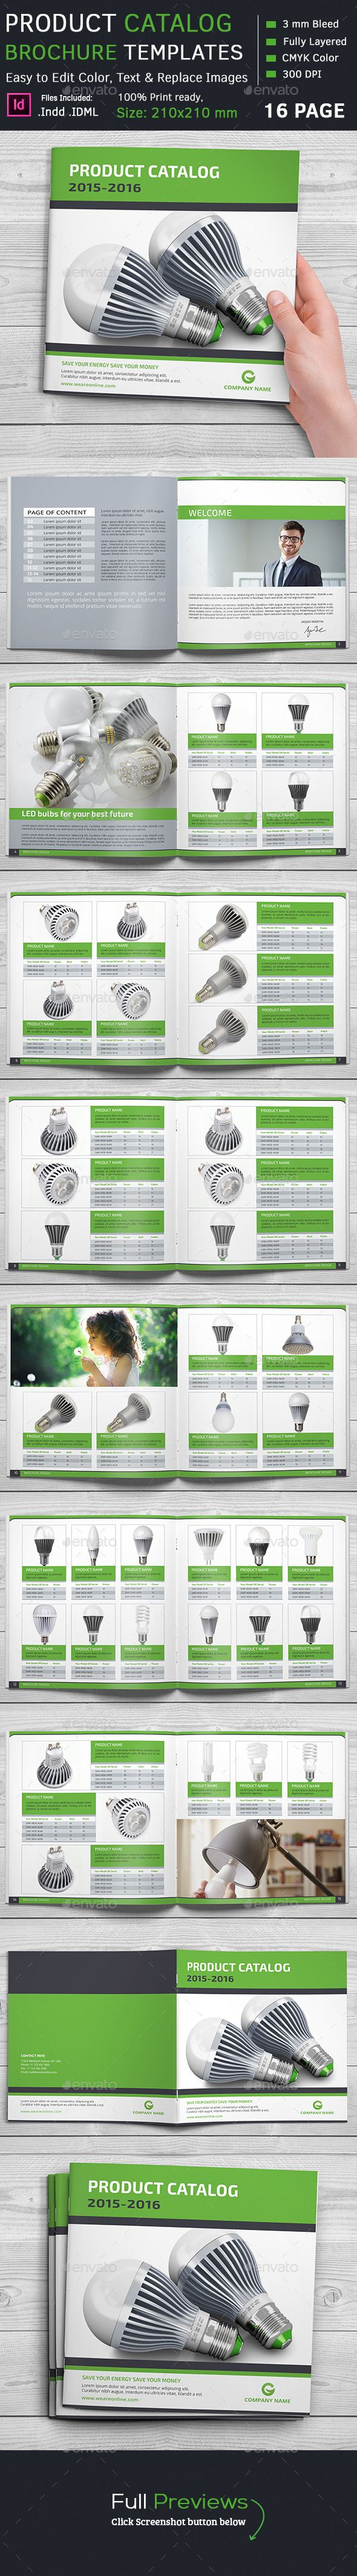 Product Catalog Square Brochure Template #design Download: http://graphicriver.net/item/product-catalog-square-brochure/12736777?ref=ksioks